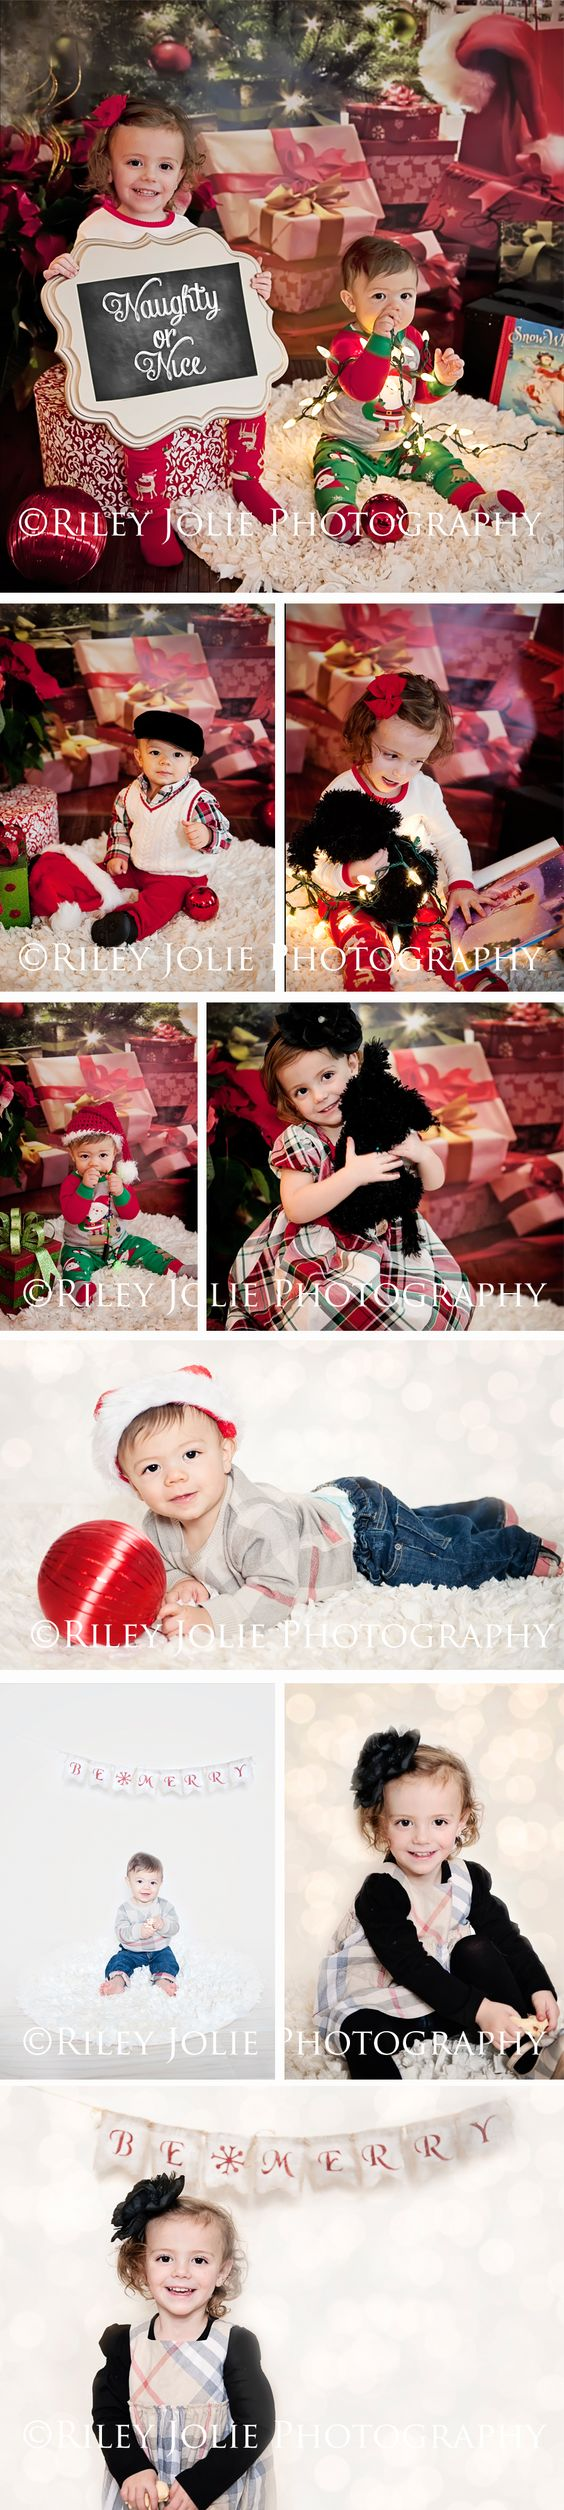 Holiday cuties | Family Photography | Bridgeport #familyphotography #Christmasphotos, #siblings